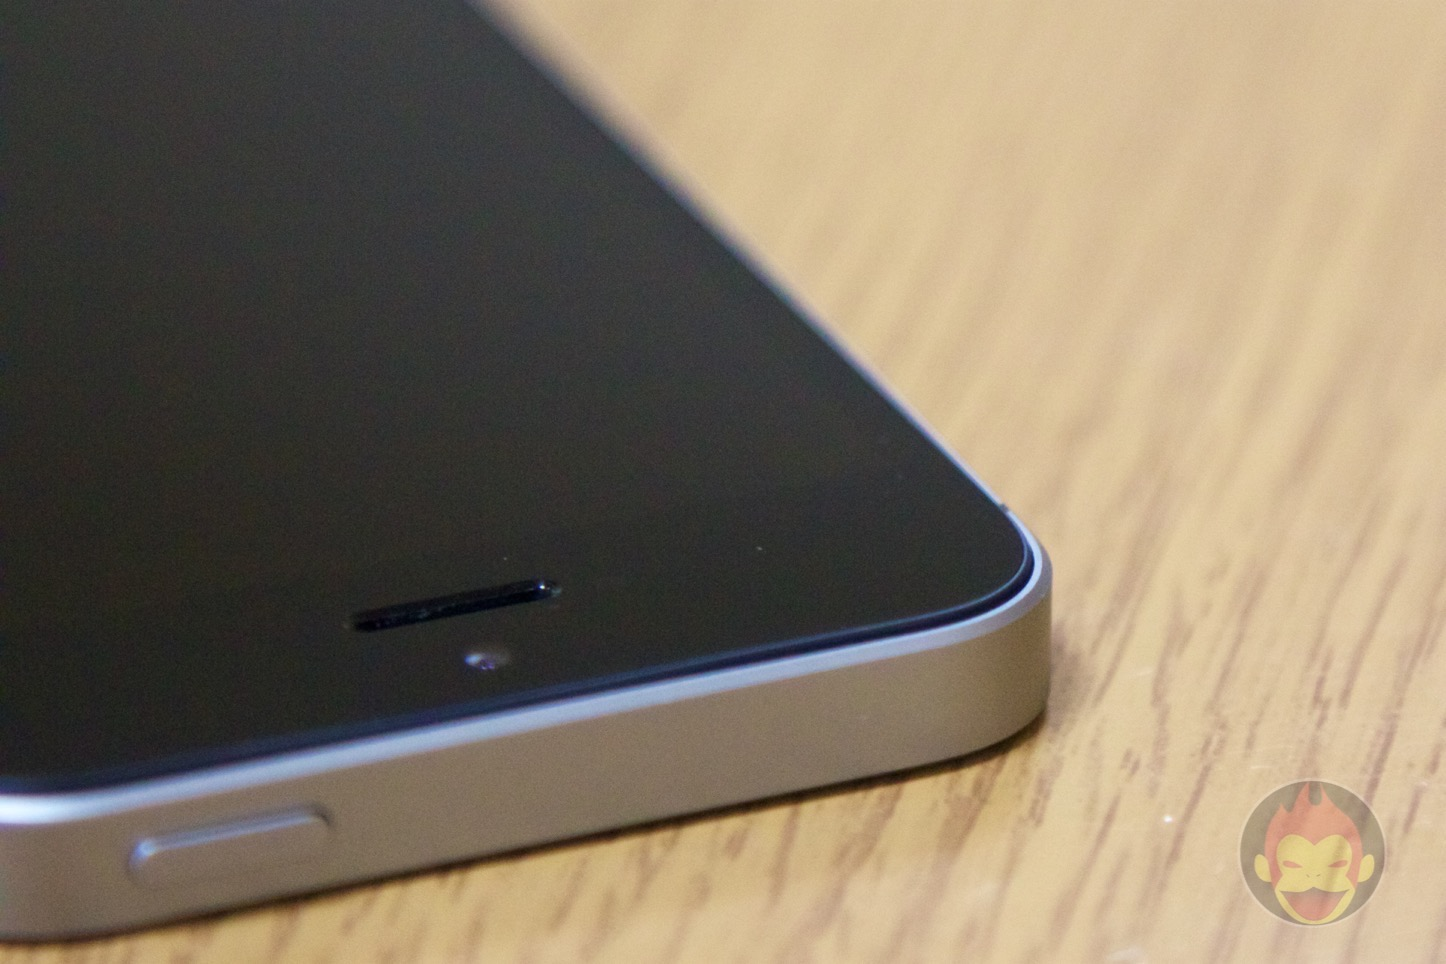 iPhone-SE-Space-Gray-64GB-Photo-Review-08.jpg